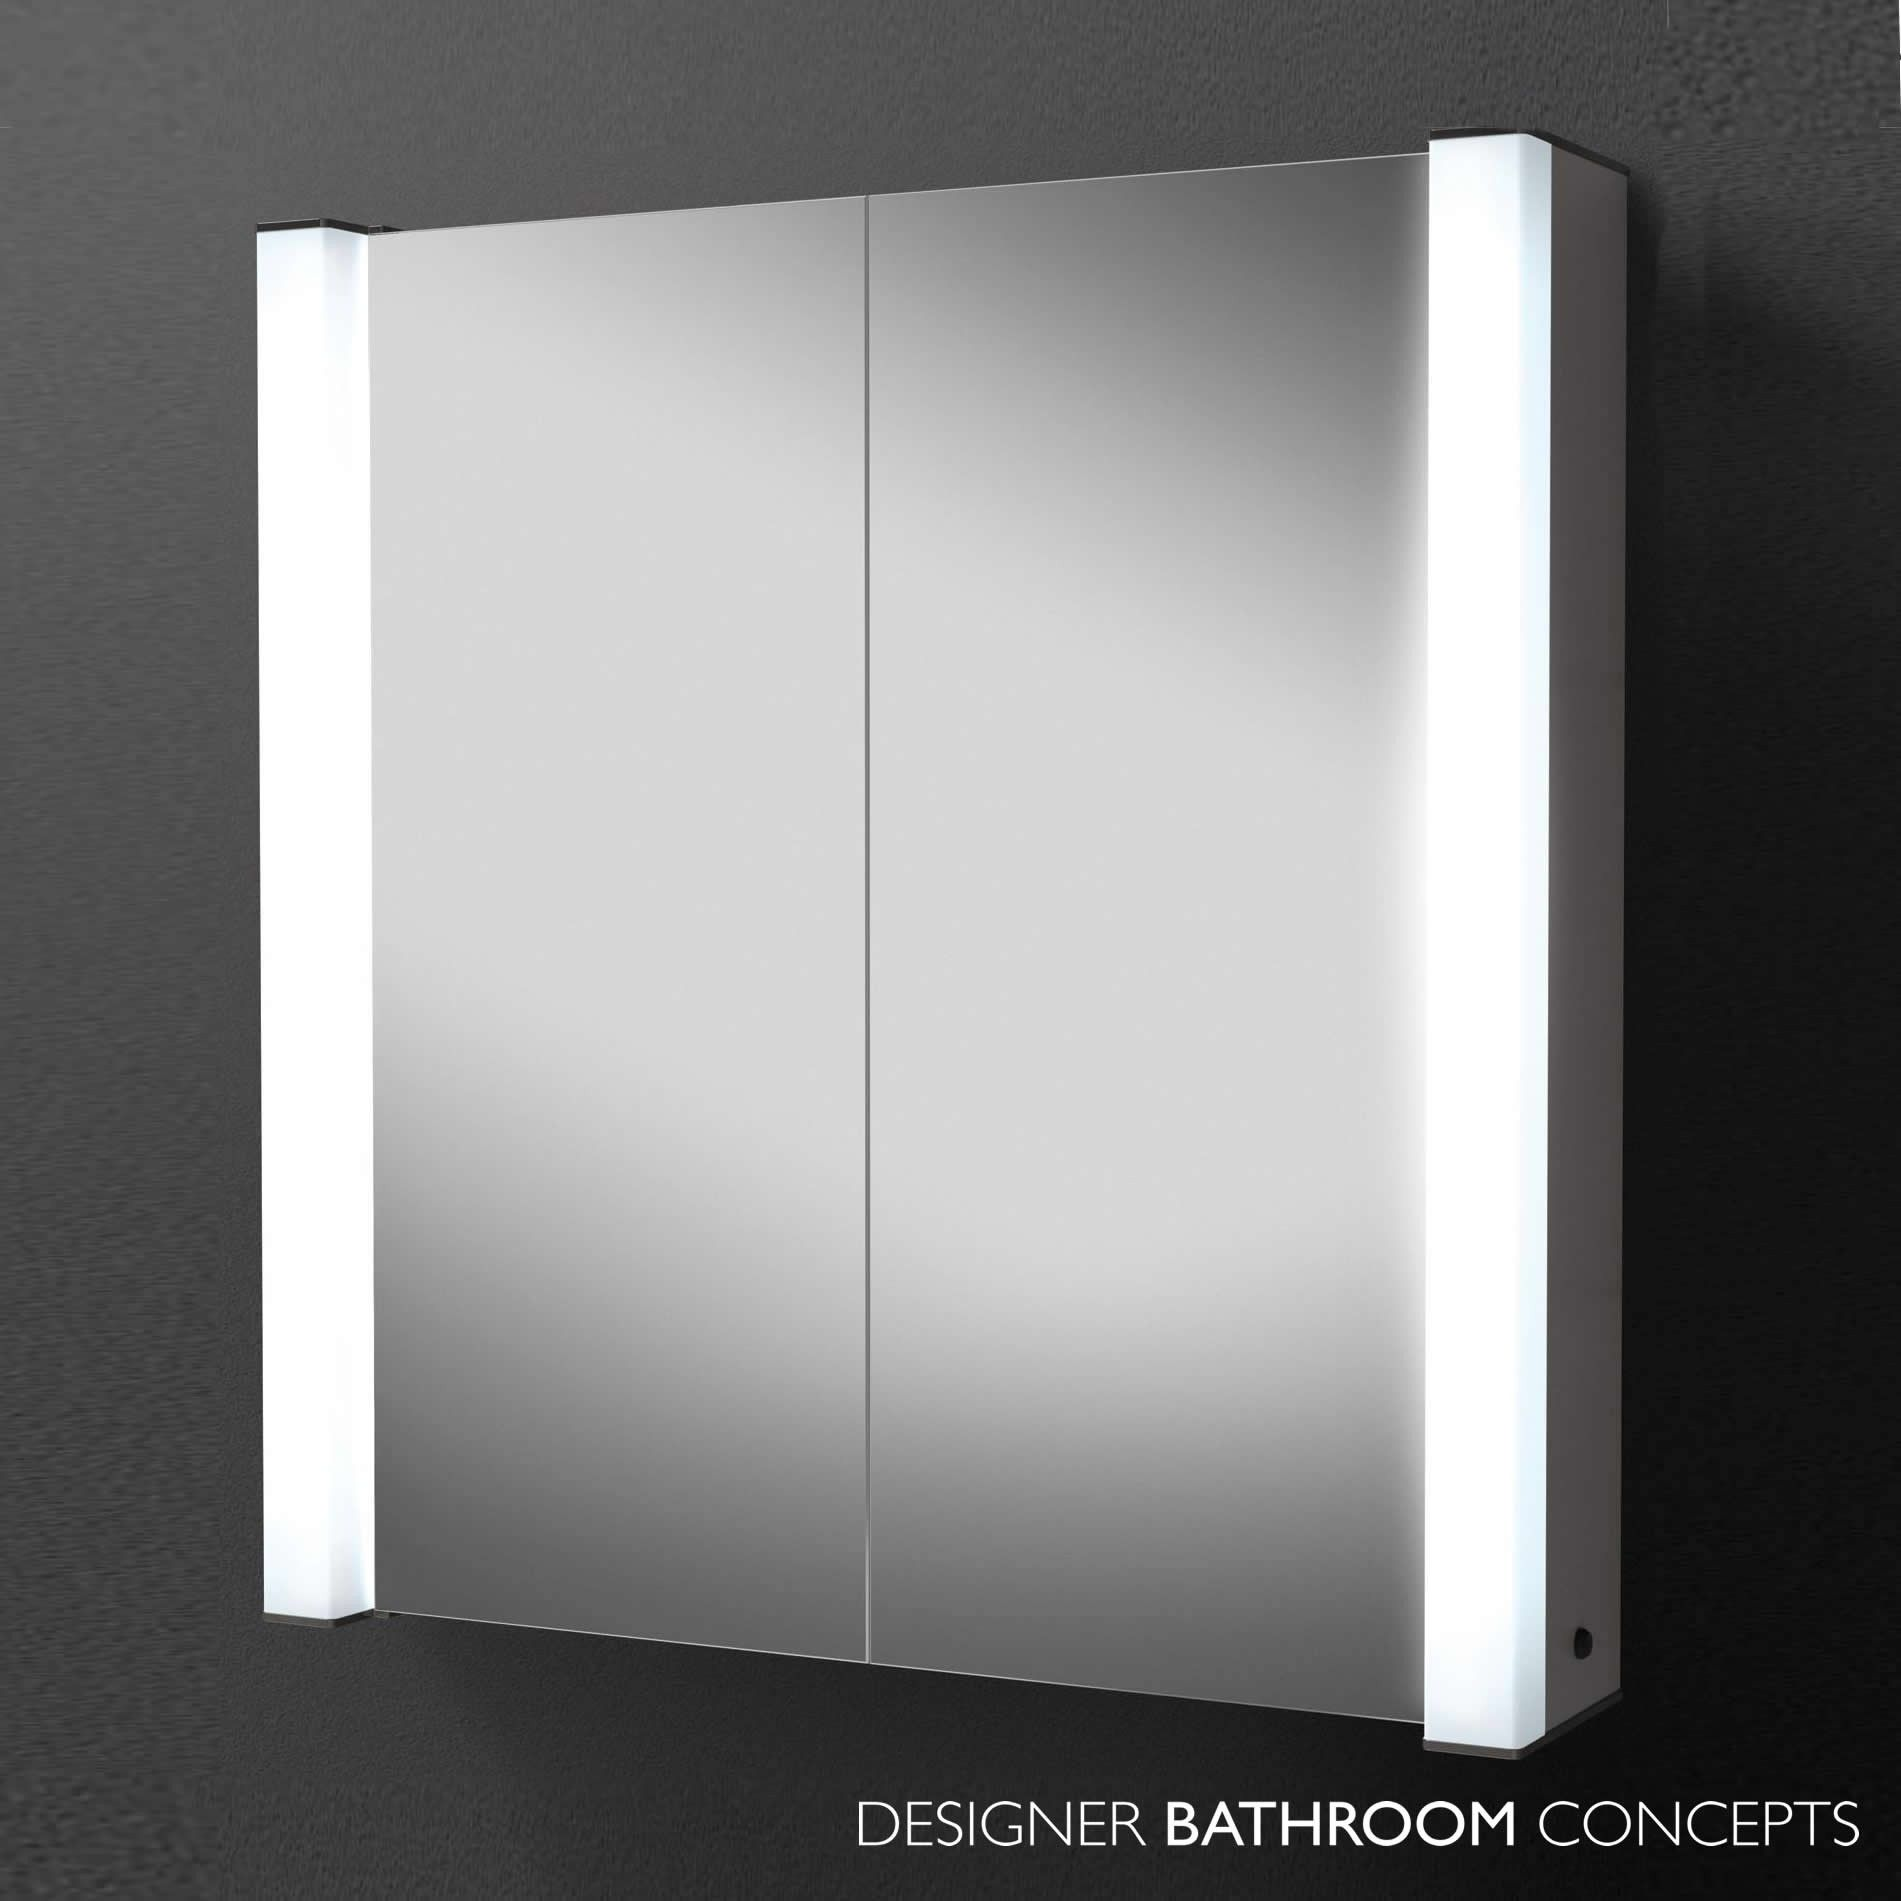 The Photo Designer Illuminated Bathroom Cabinet is a high quality ...